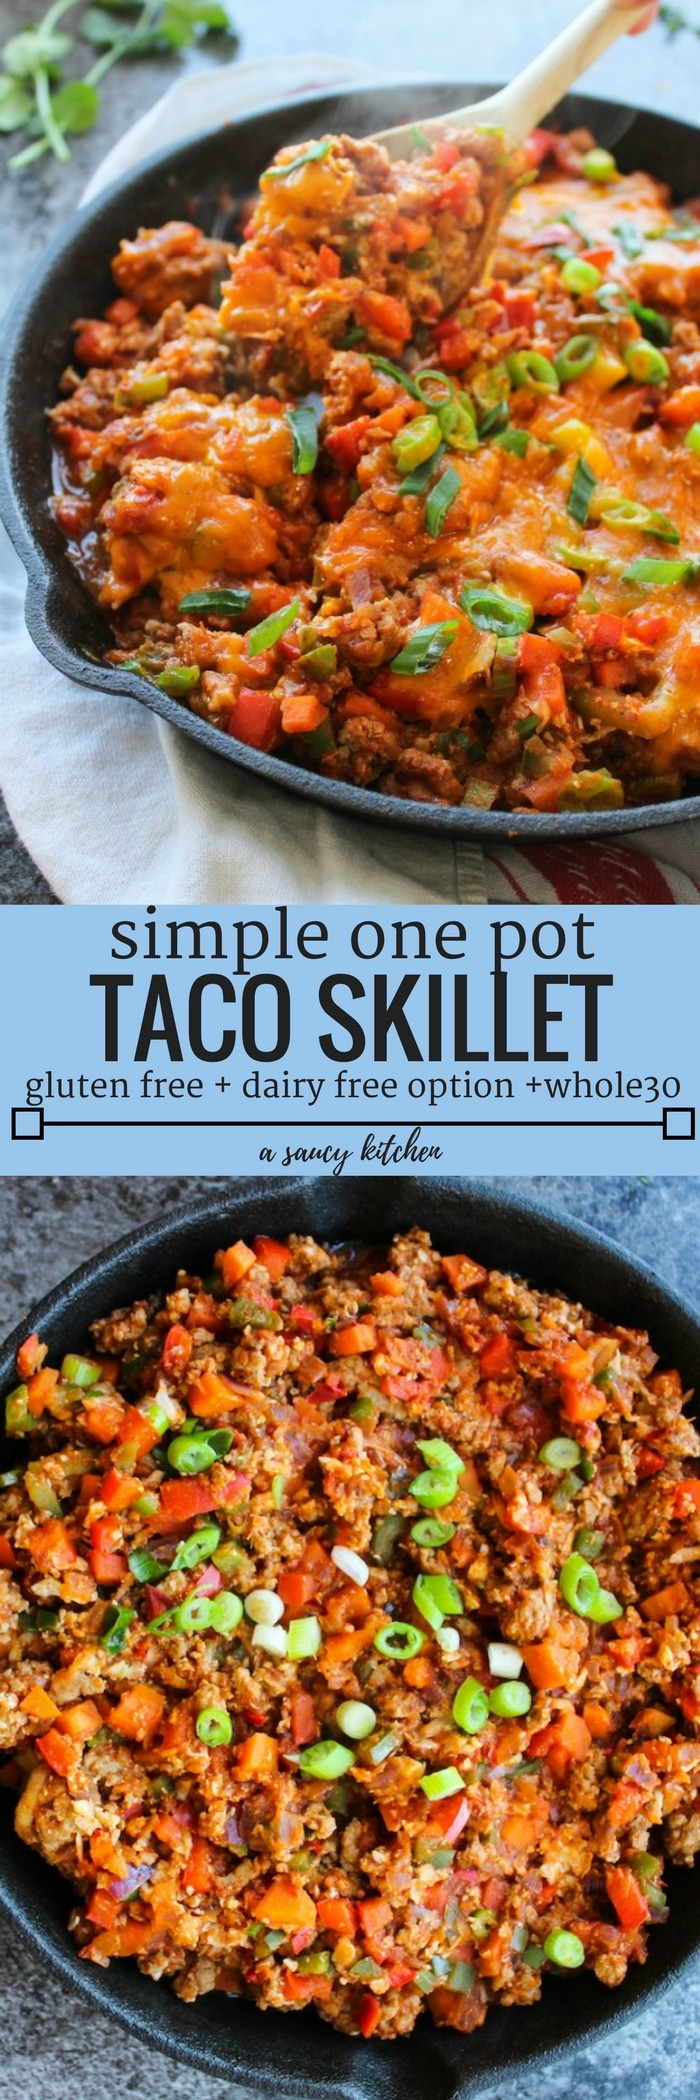 Super simple one pot Taco Skillet packed with veggies, protein, and loads of spice | A perfect, low carb weeknight dinner! Gluten Free + Whole30 & Paleo options - just skip the cheese!